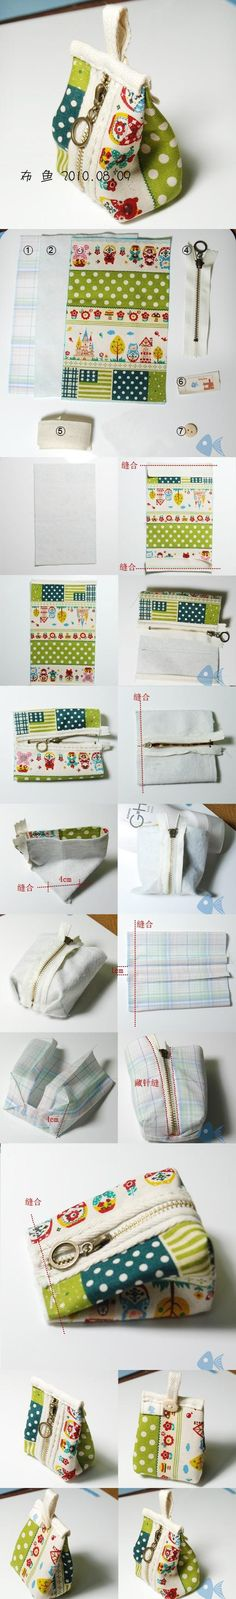 DIY Small Handbag DIY Projects